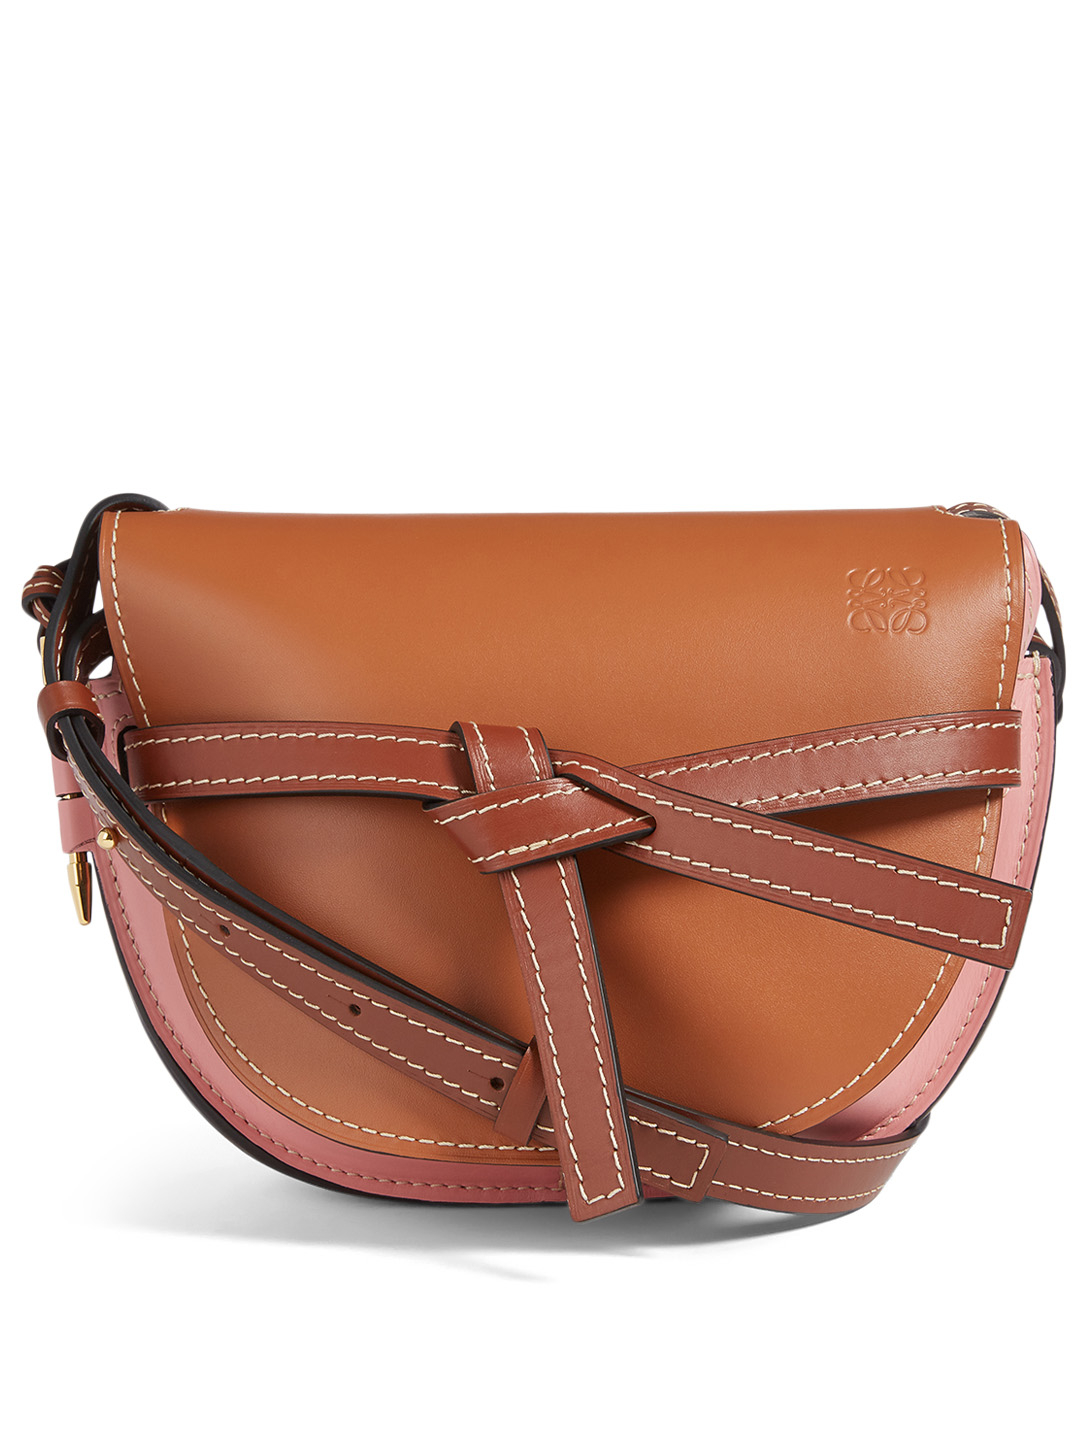 LOEWE Small Gate Leather Crossbody Bag Women's Brown